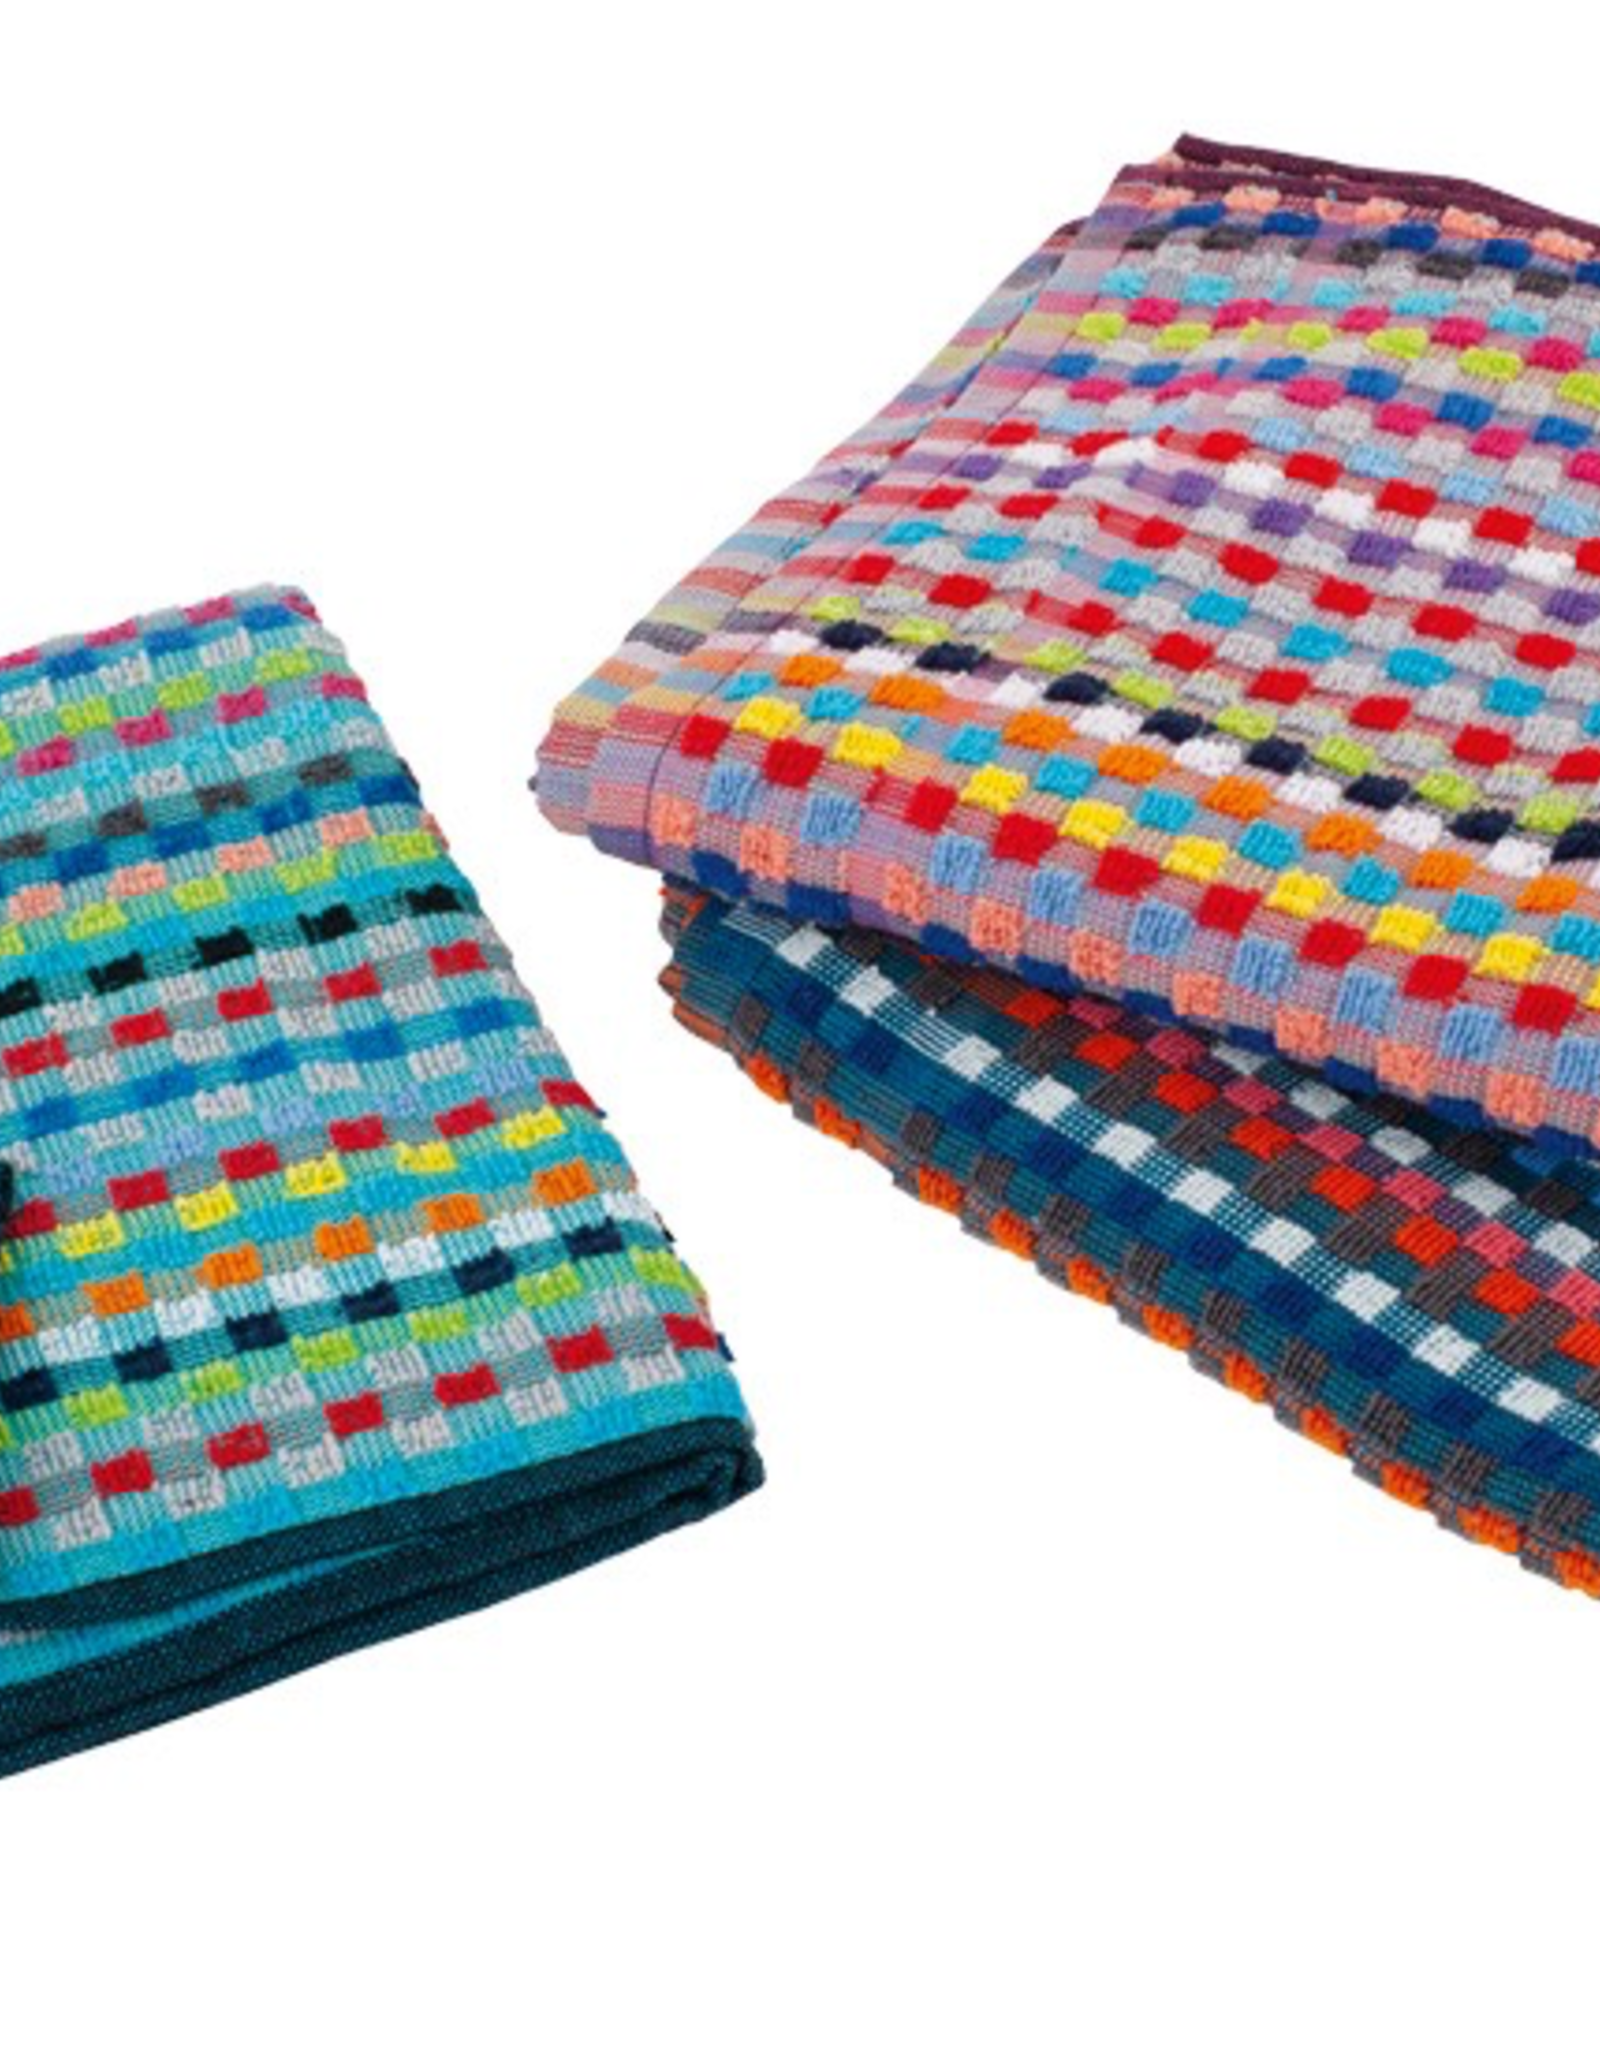 Pit Towel - Recycled yarn - colours wil vary